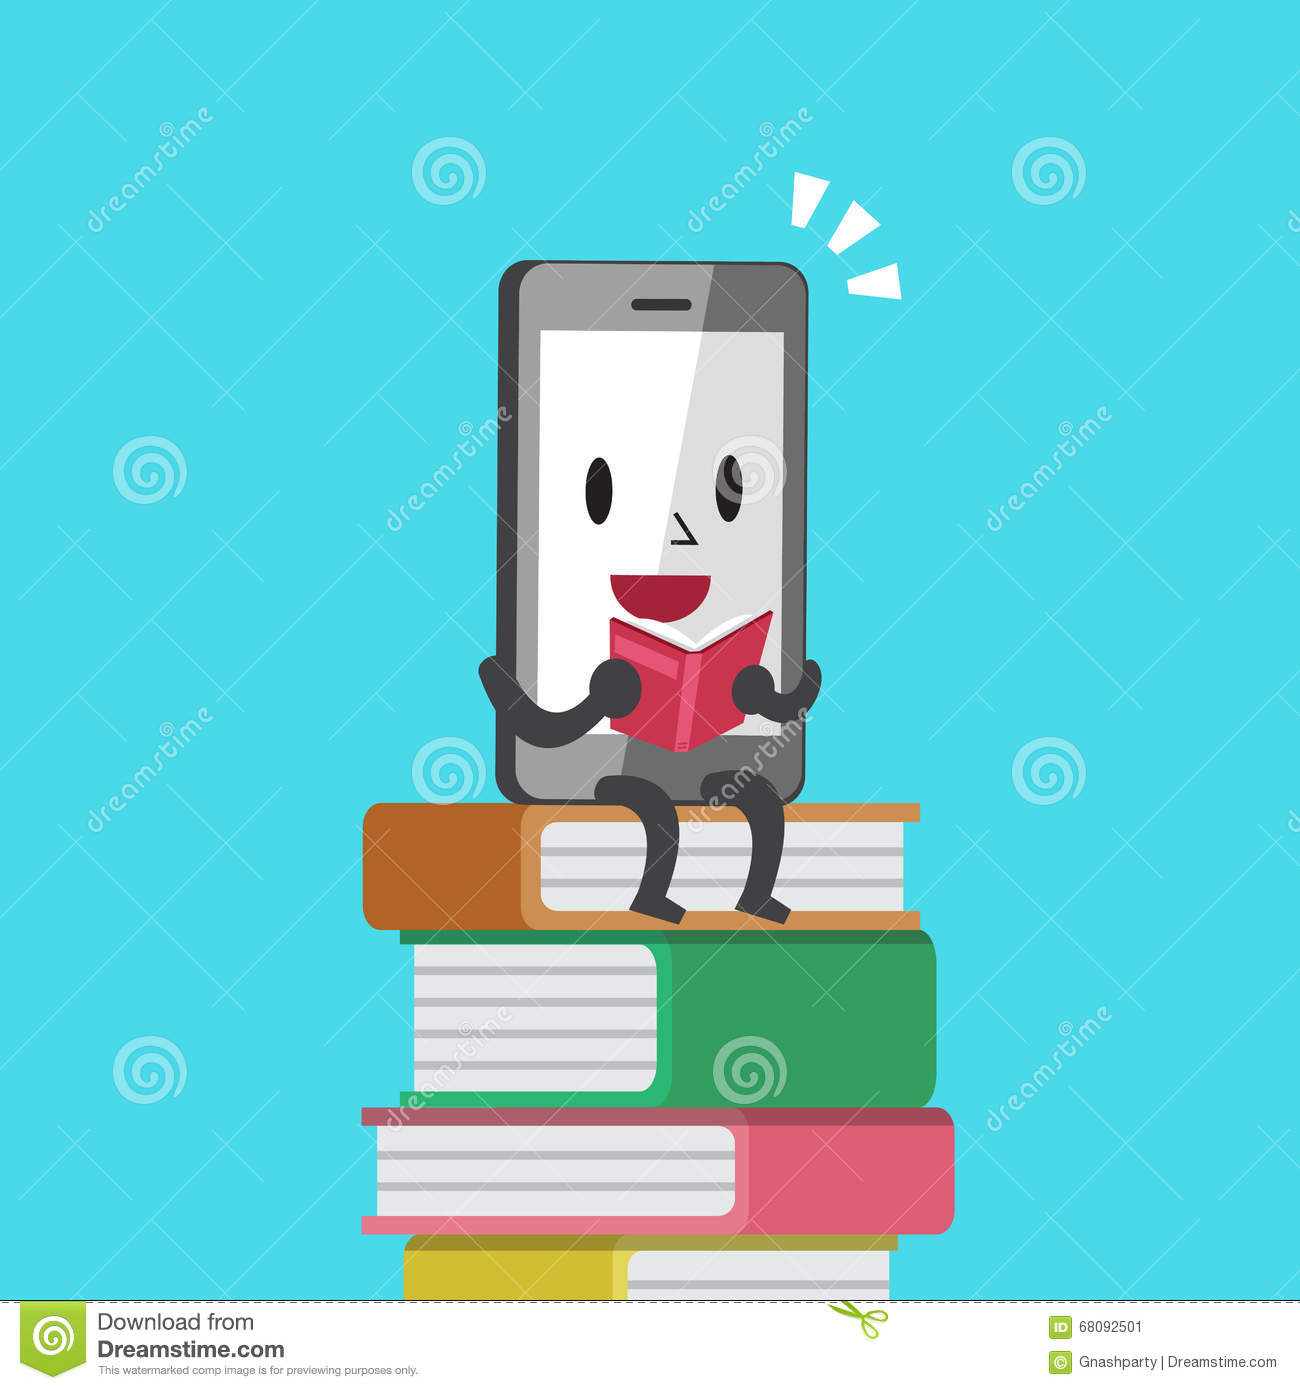 Cartoon Characters Phone Numbers : Cartoon smartphone character reading a book stock vector